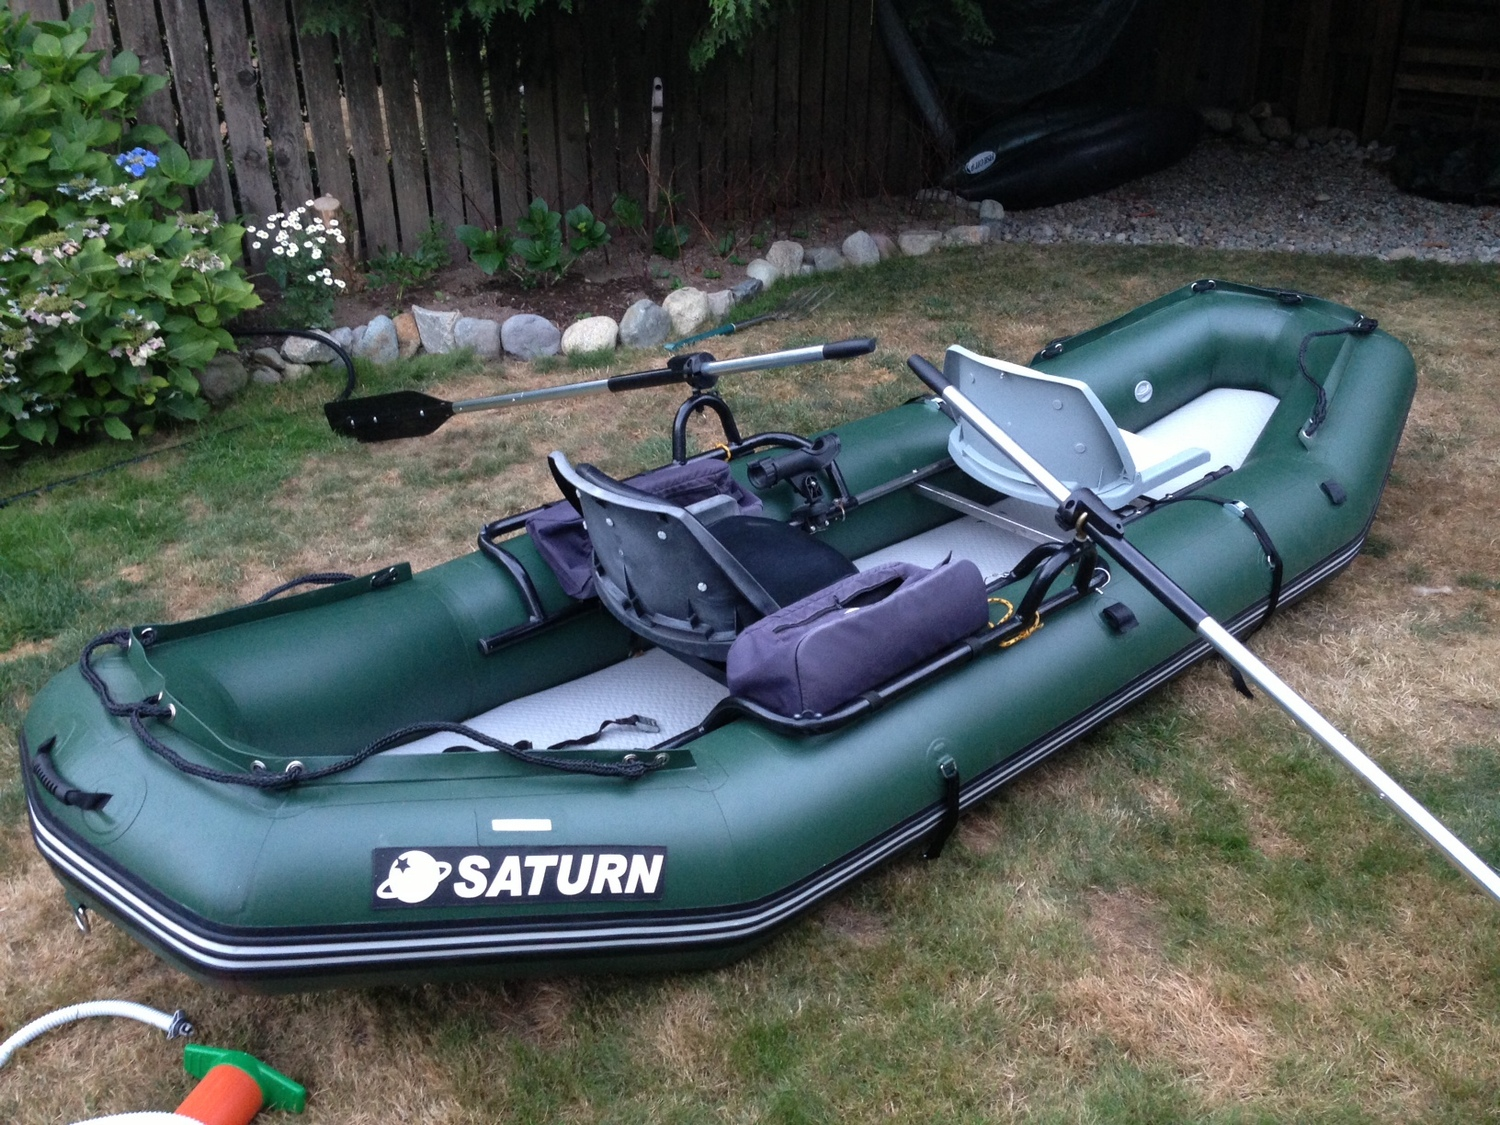 Saturn light inflatable river rafts lowest prices in usa for Fishing rafts for sale